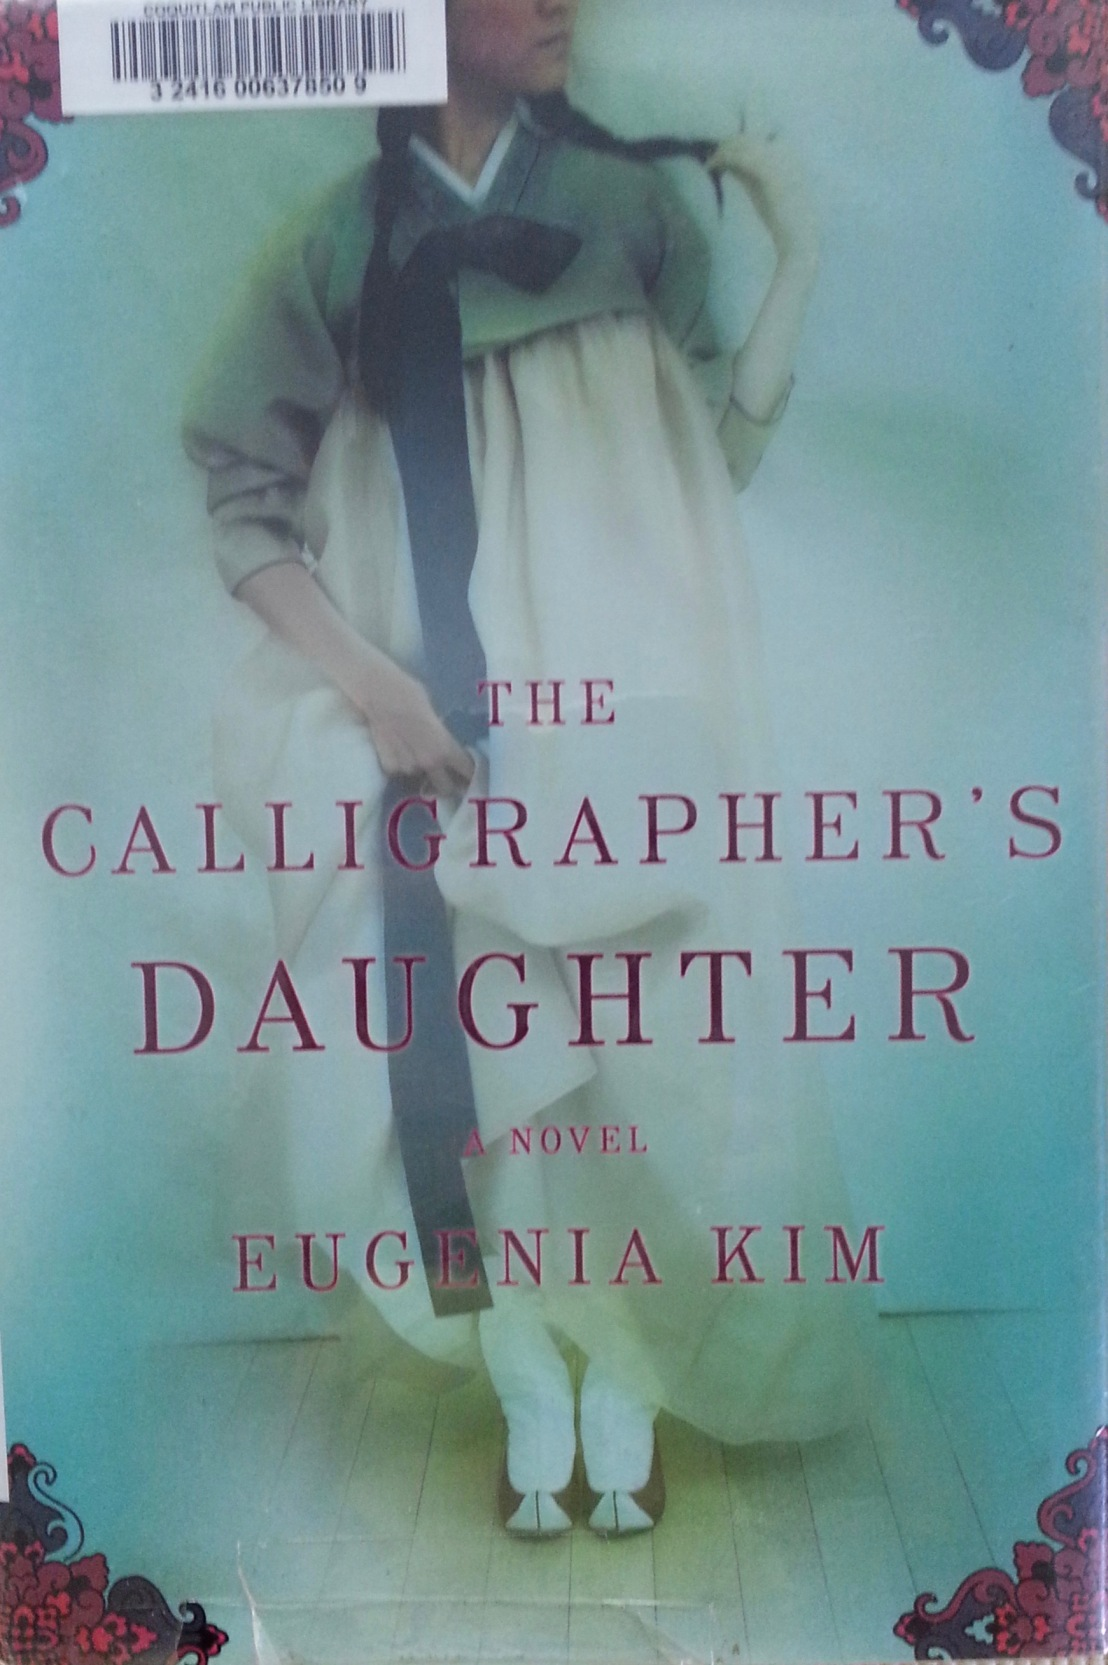 Eugenia Kim's — The Calligrapher's Daughter *****